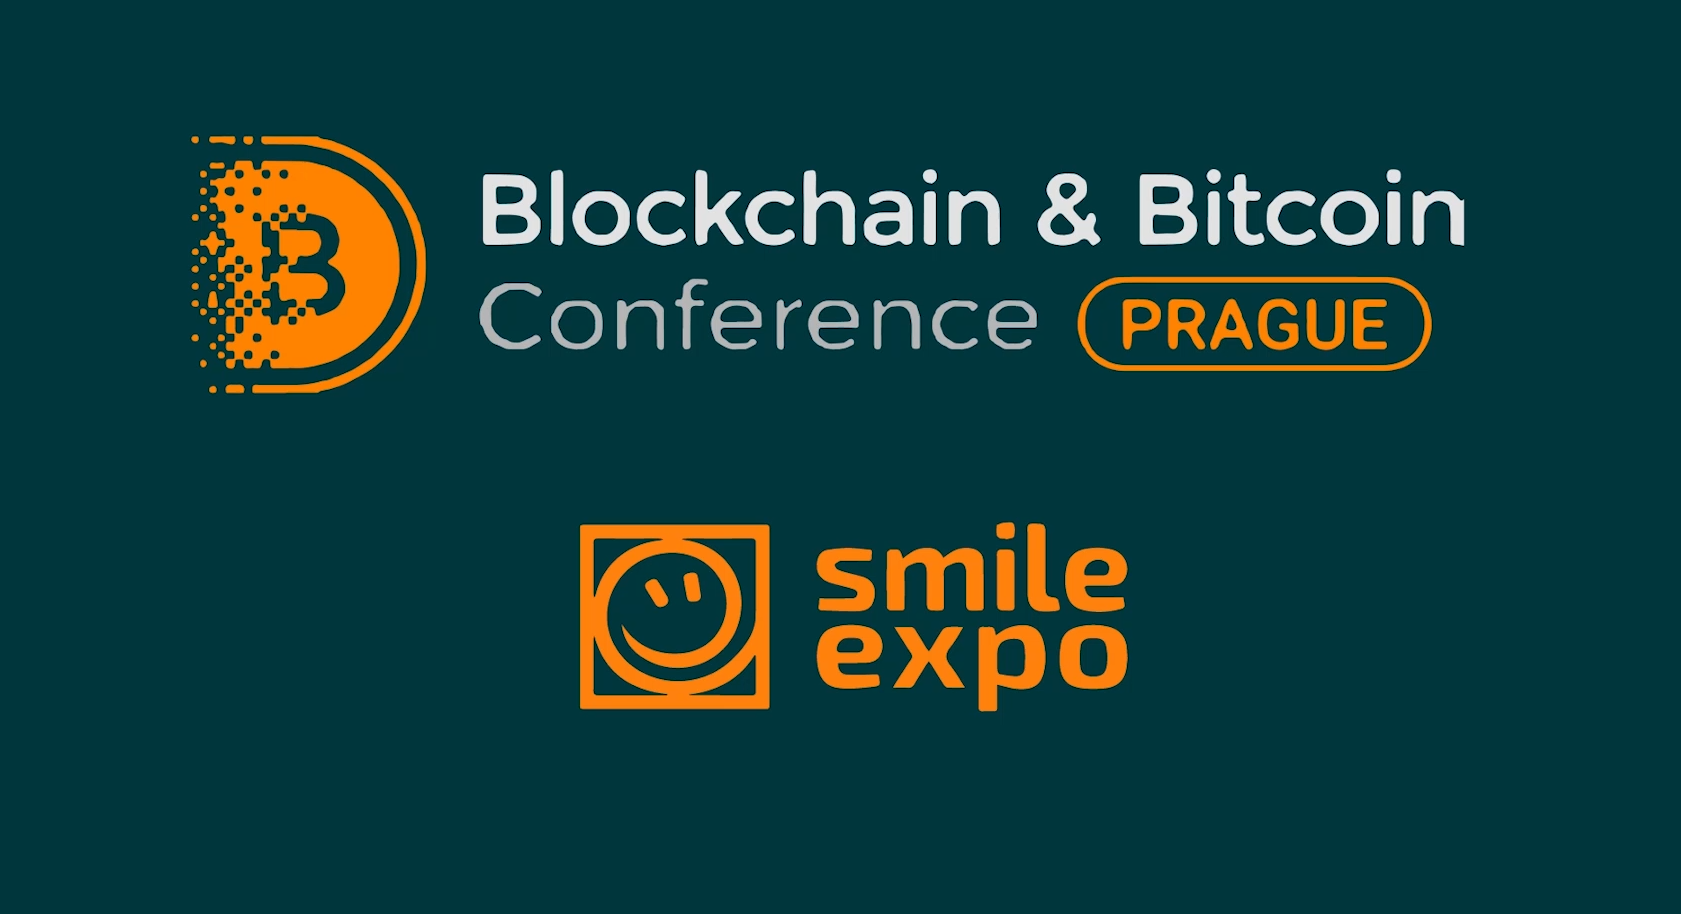 Adel ▲ Conference ▲ Bitcoin & Blockchain Conference ▲ Prague